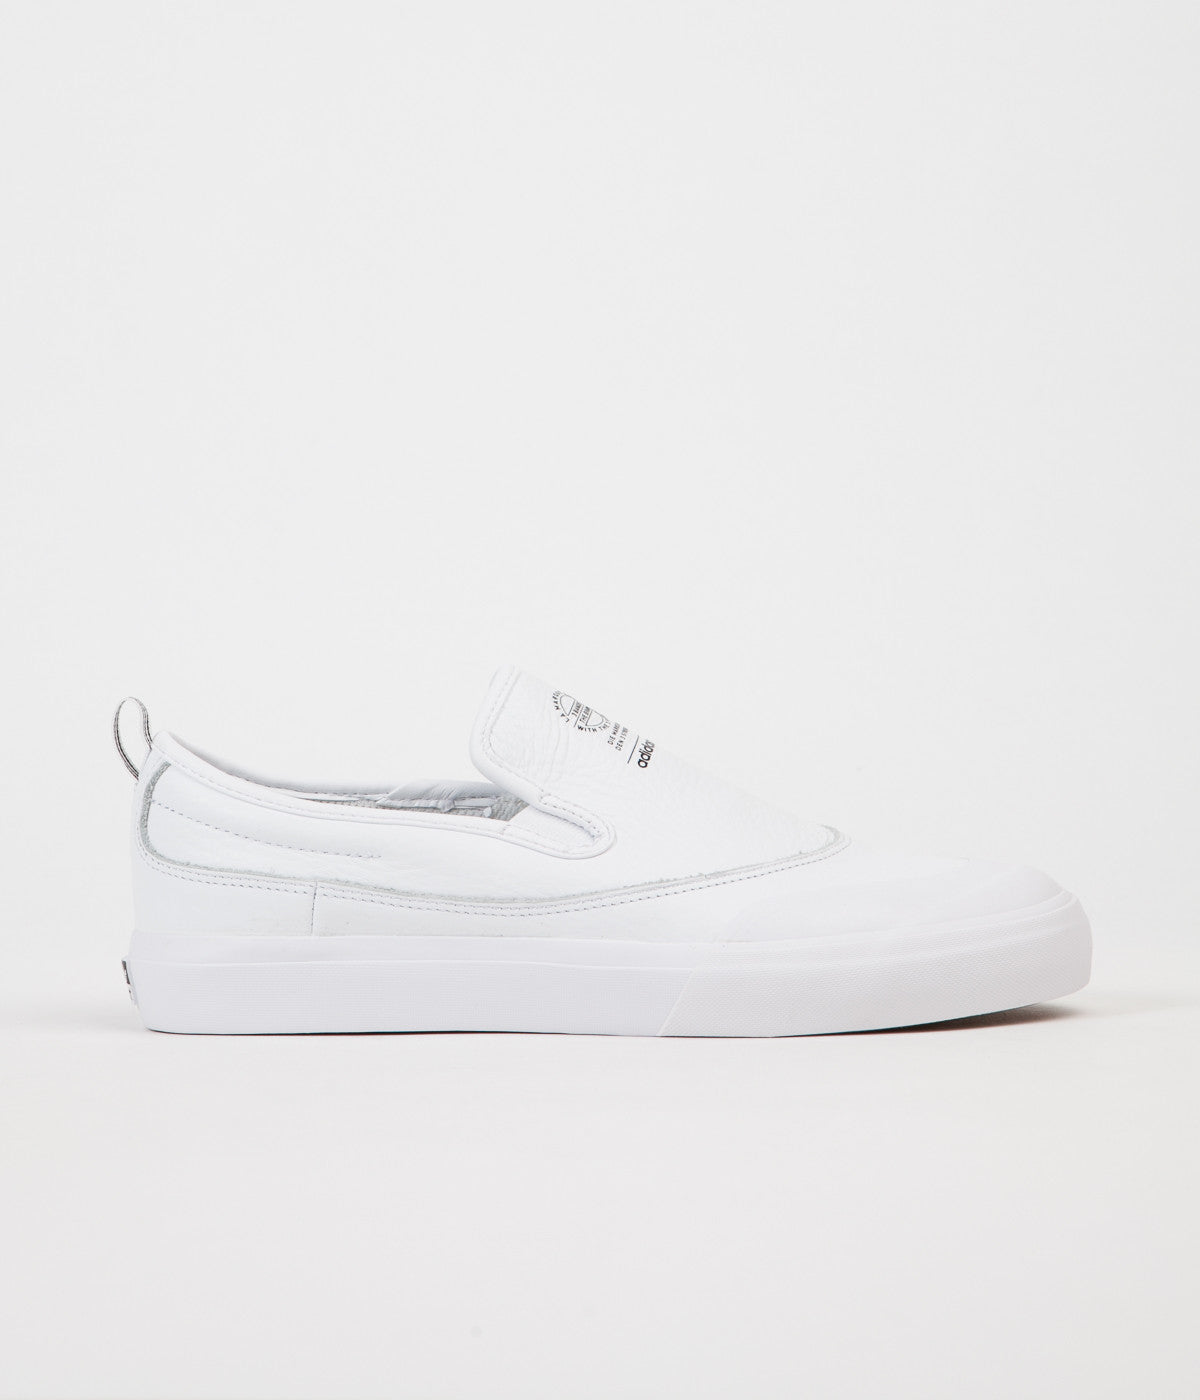 Adidas Matchcourt Slip On Shoes - White / White / White